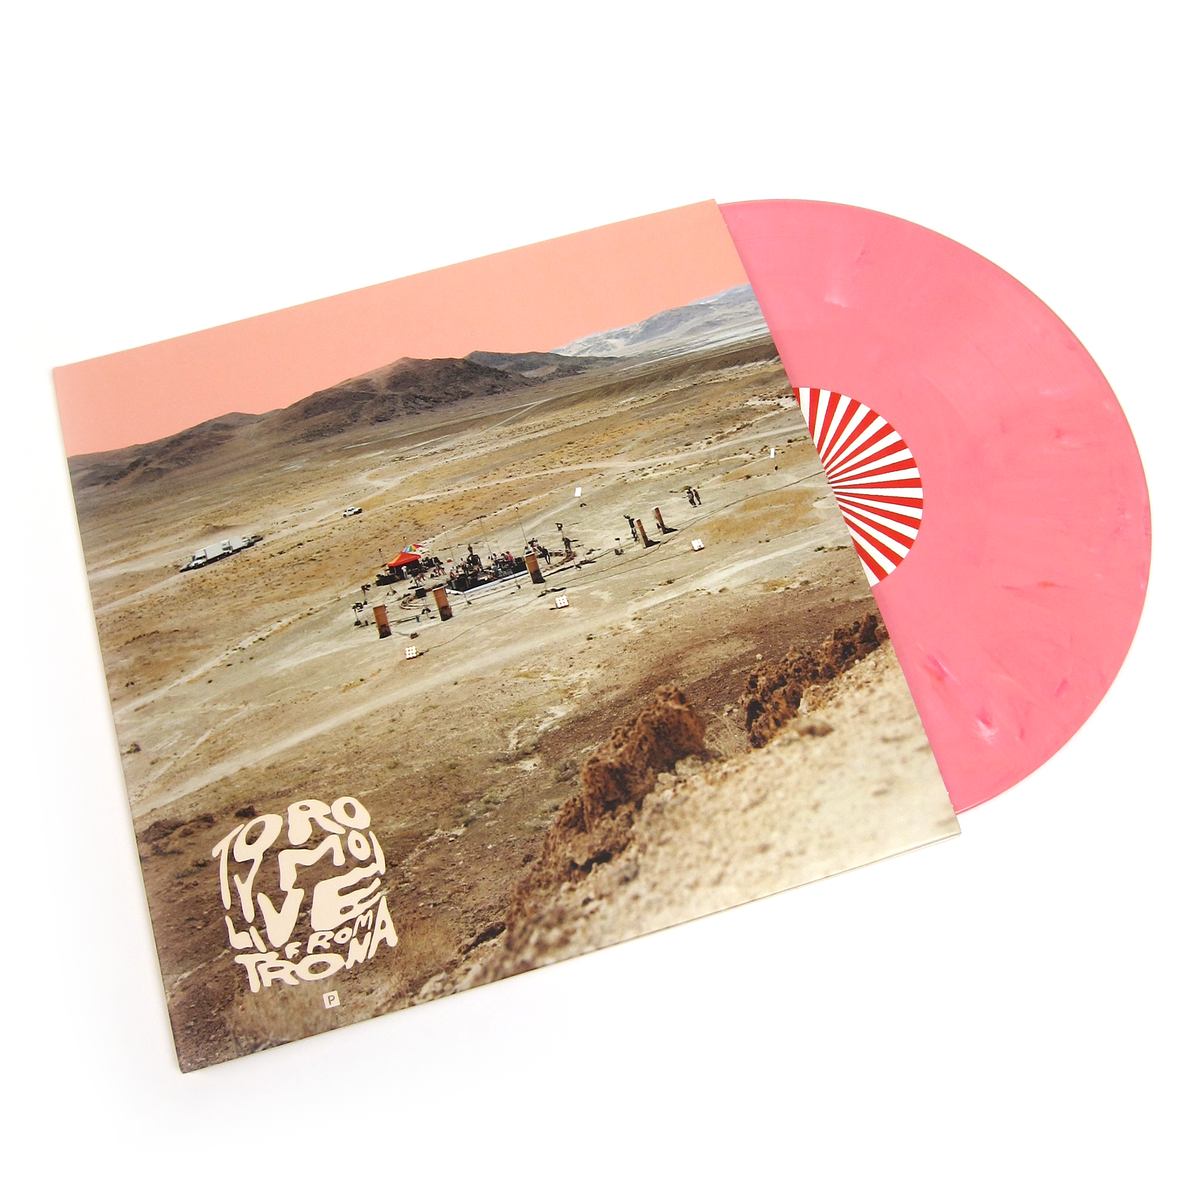 Toro Y Moi: Live from Trona (Colored Vinyl) Vinyl 2LP